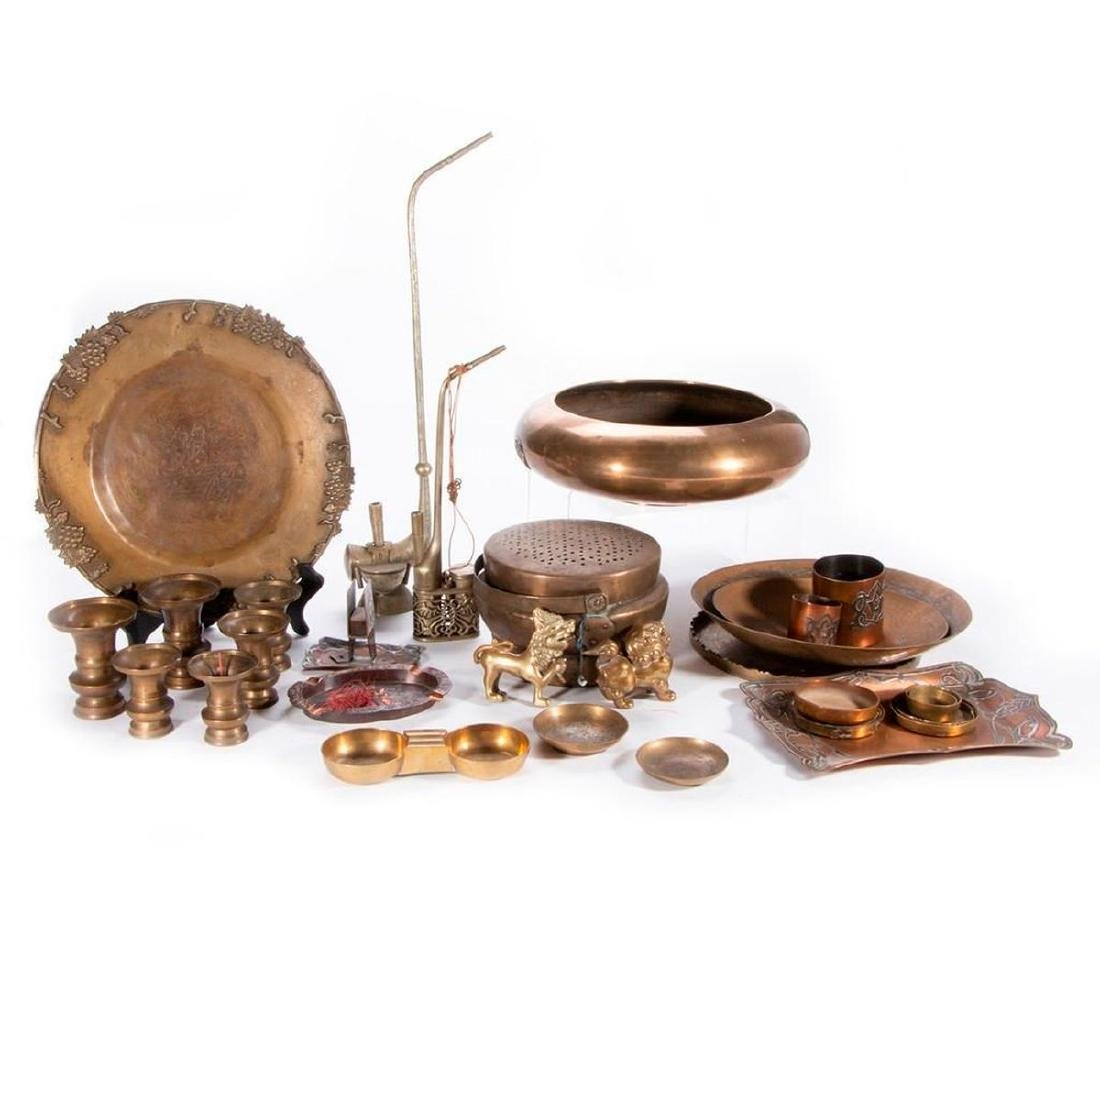 A collection of various antique metal objects.